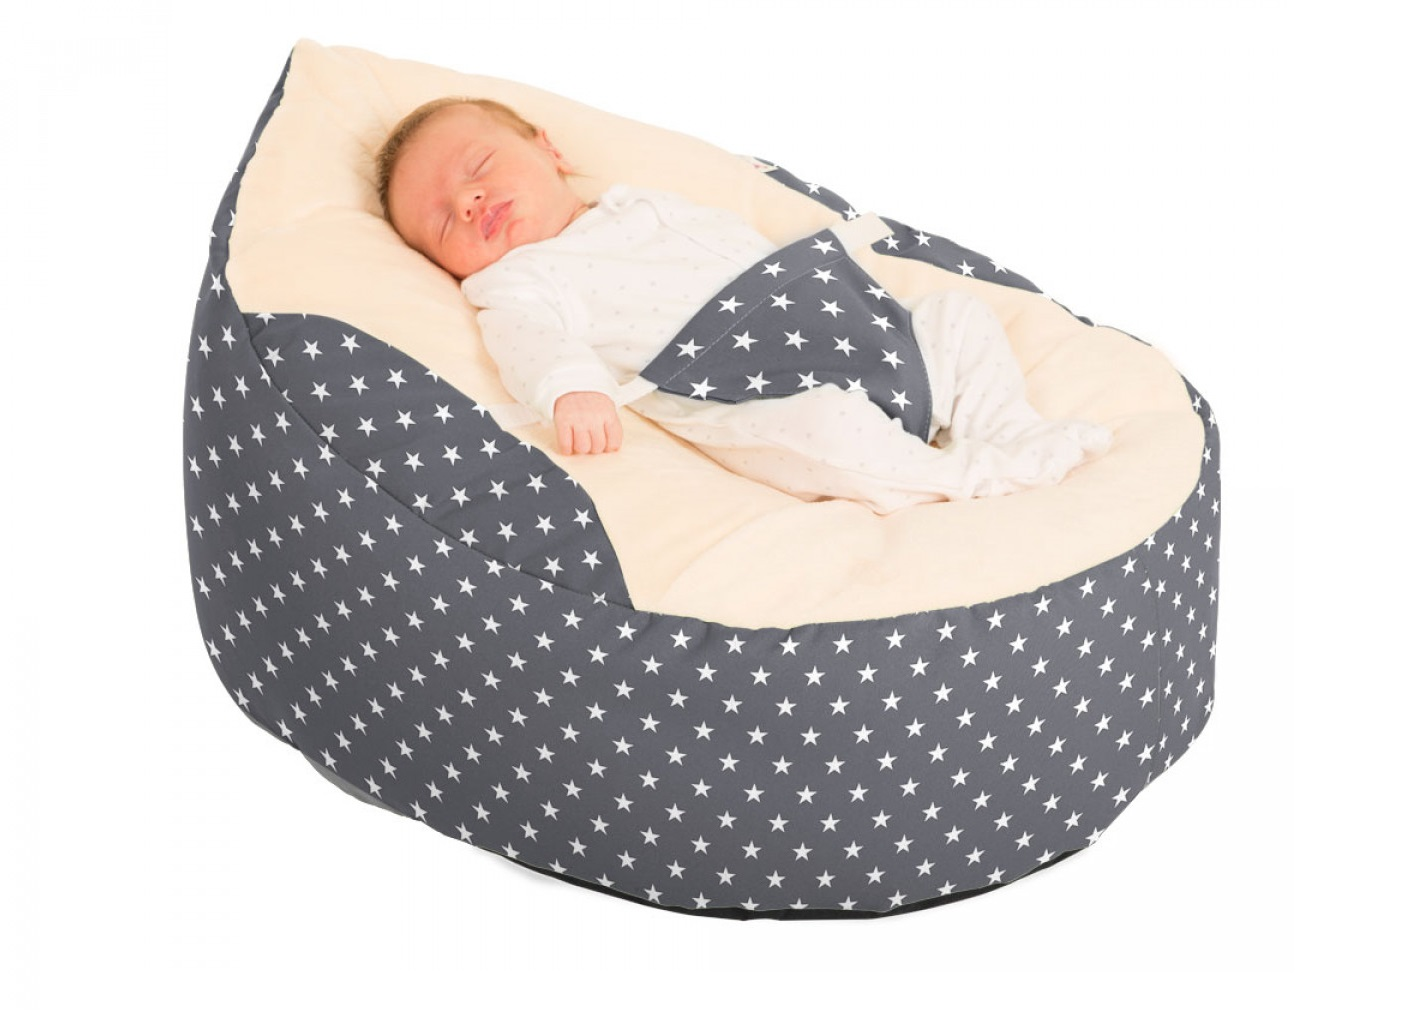 What to consider when buying a baby sleeping bean bag chair polka dots